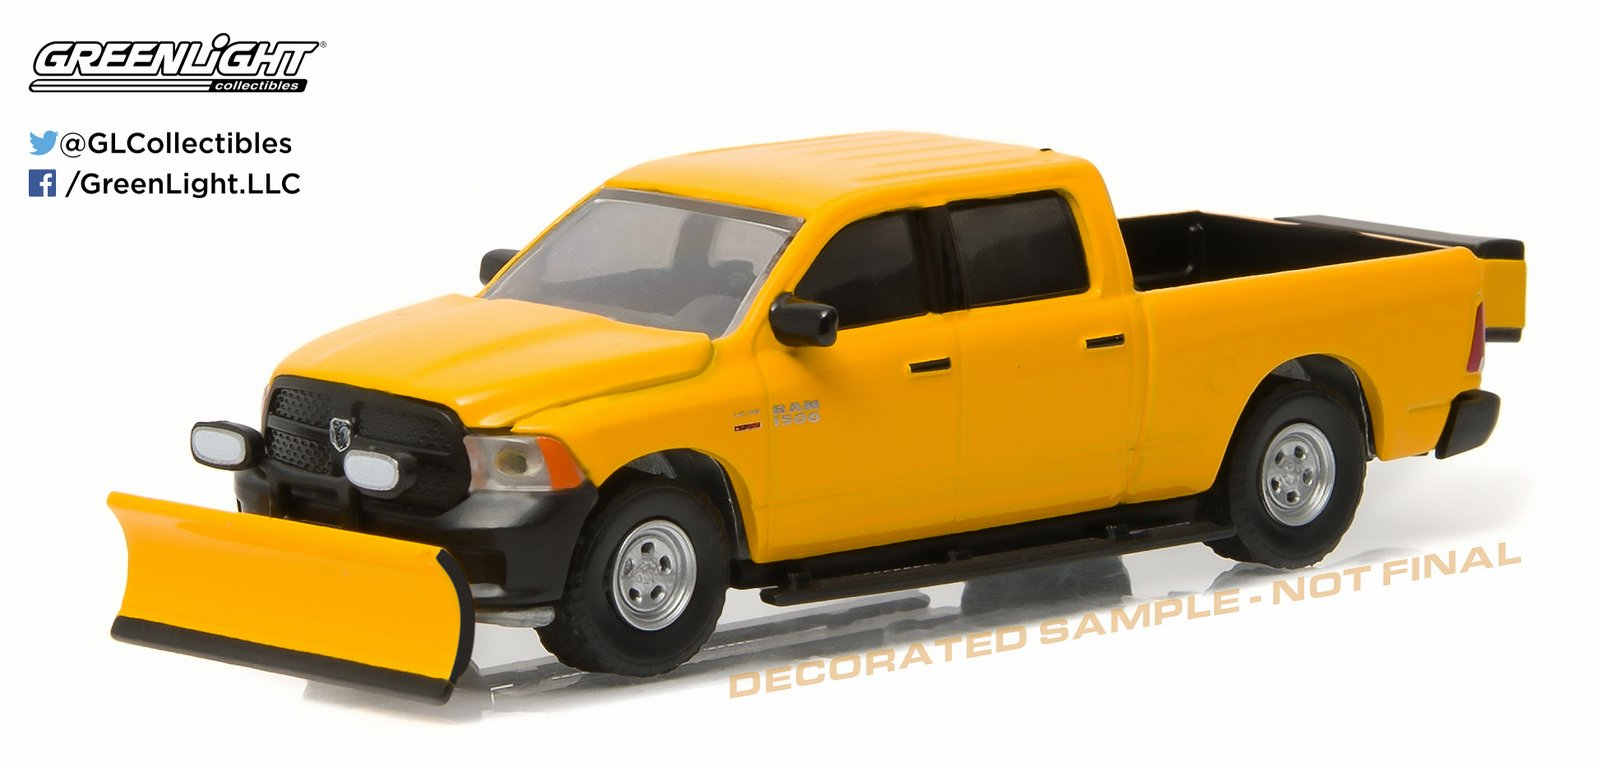 GREENLIGHT 1:64 BLUE COLLAR COLLECTION 1 - 2014 RAM 1500 TRADESMAN WITH SNOW PLOW AND SALT SPREADER